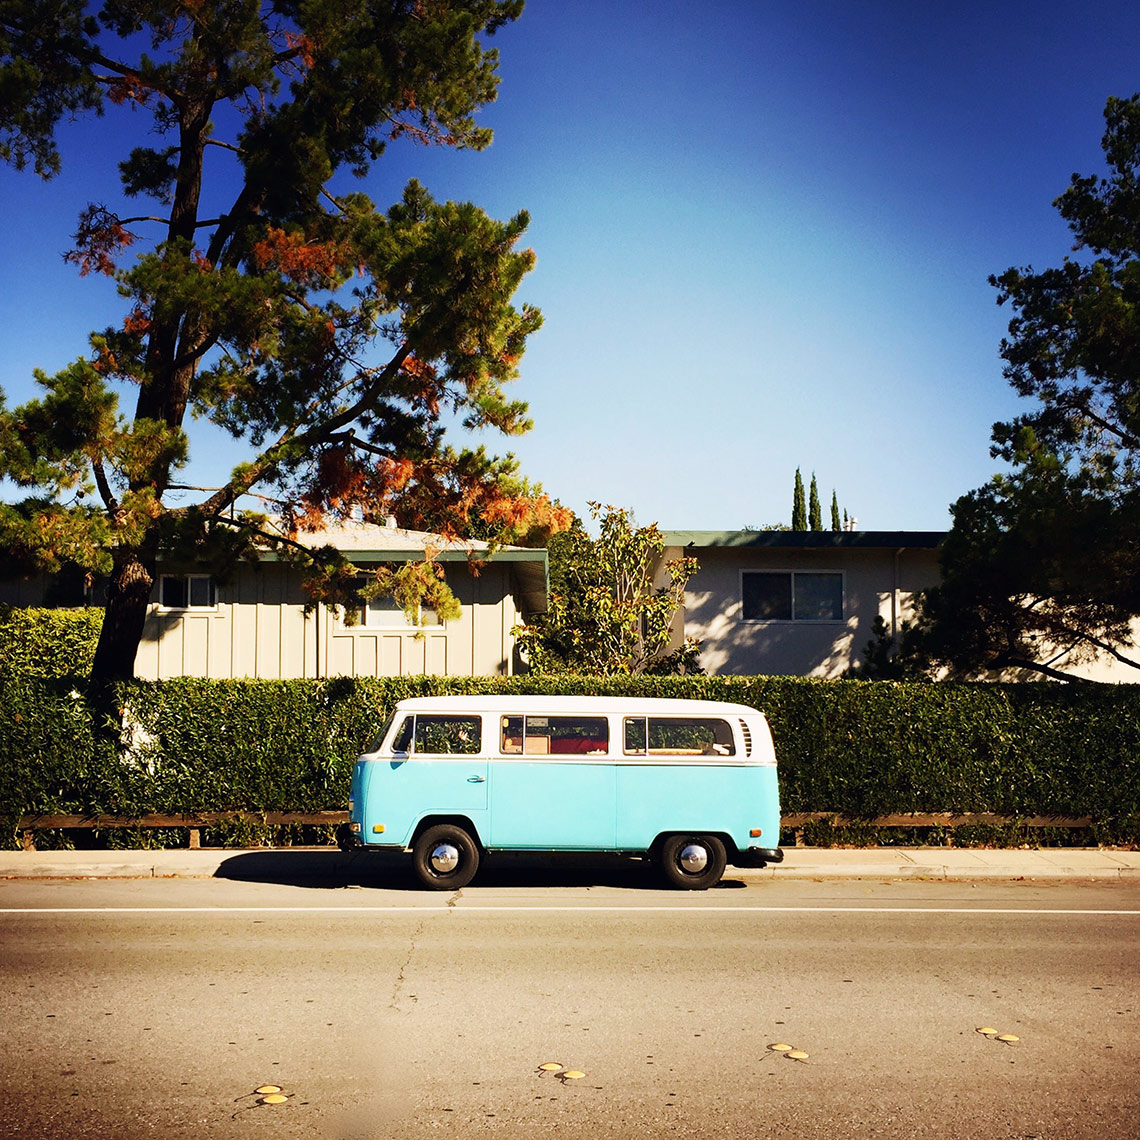 Image of Vintage VW | Tosca Radigonda Photography